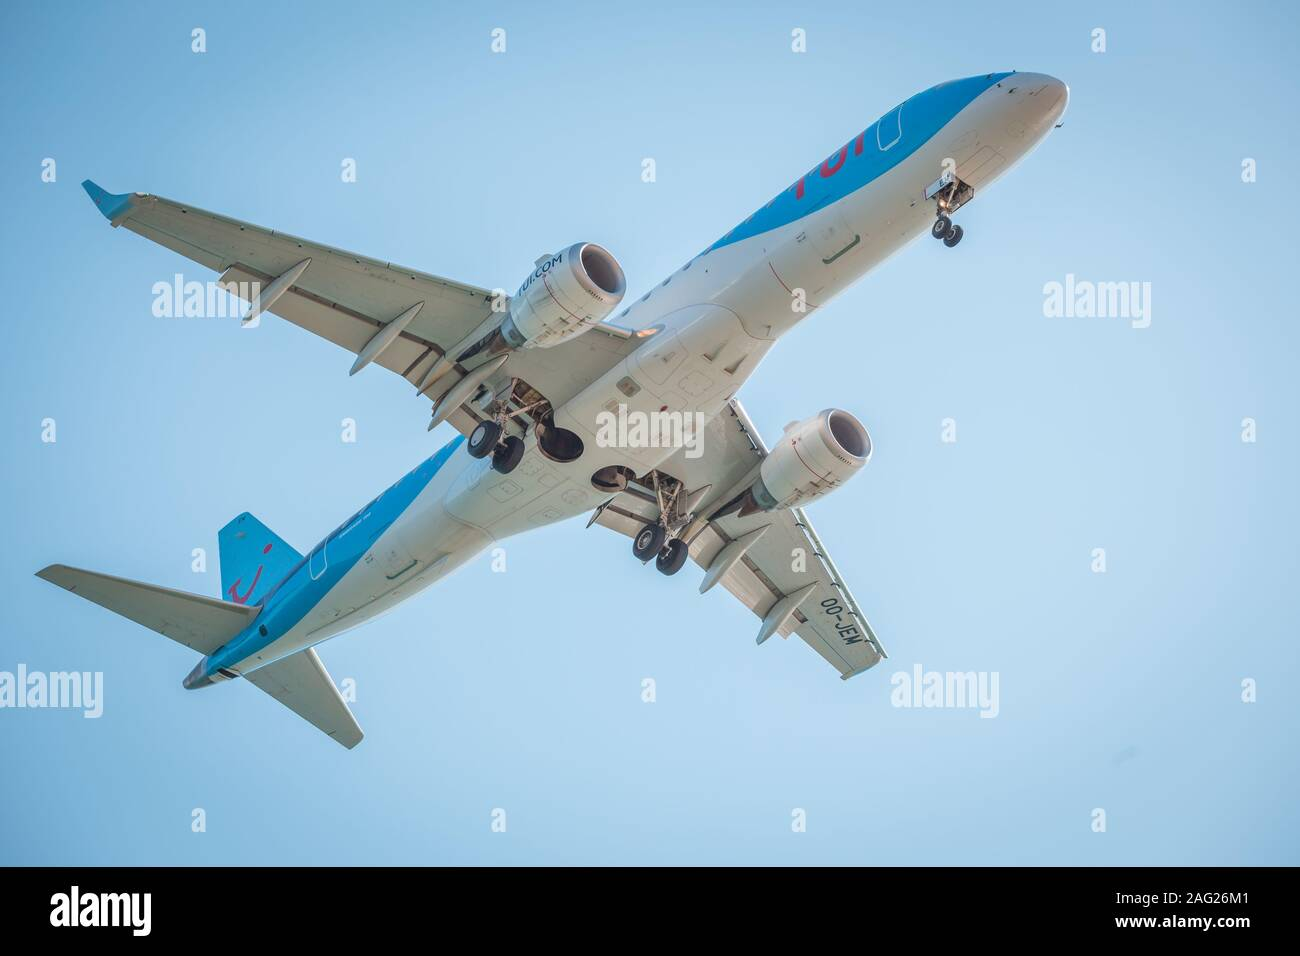 Zakynthos, Greece, August 2019: Big airplane, probably TUI, with landing gear down, under belly view, during landing at Zakynthos International Stock Photo